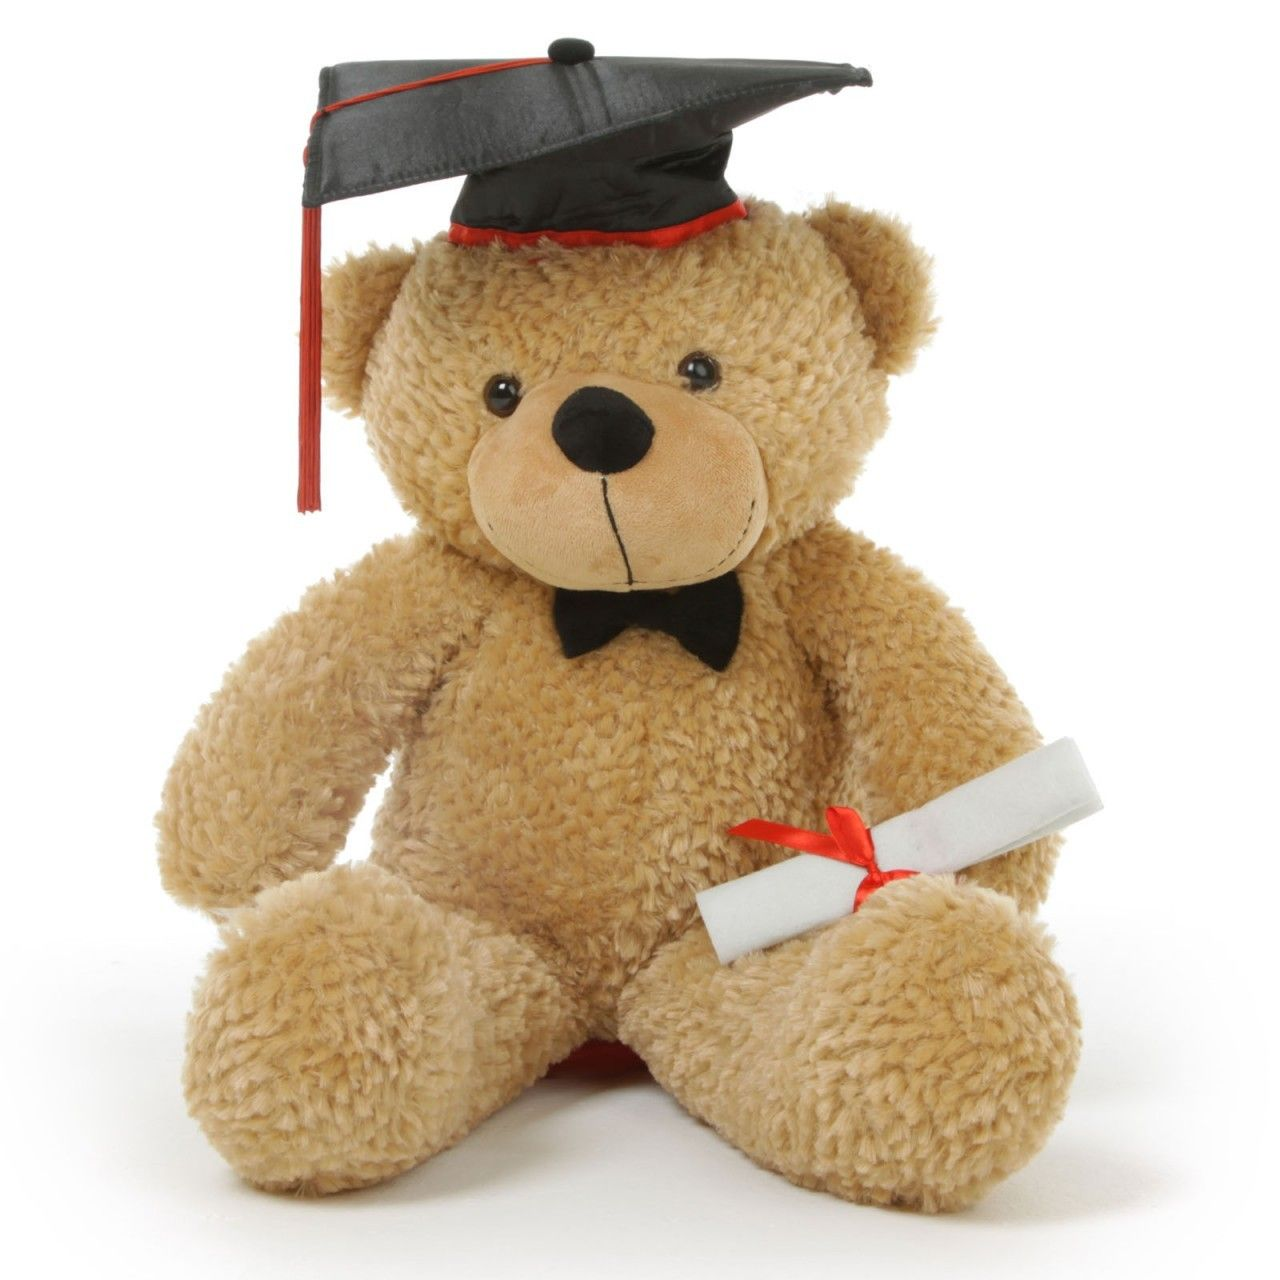 Shaggy G Cuddles Amber Graduation Teddy Bear With Cap And. Best Jobs For Highschool Graduates. Good Sample Senior Executive Resume. Travel Brochure Template Free. Software Engineer Resume Template. Graduation Gift Ideas For Girlfriend. Business Flyers Template Free. Free Photography Gift Certificate Template. Valentines Day Cards Template